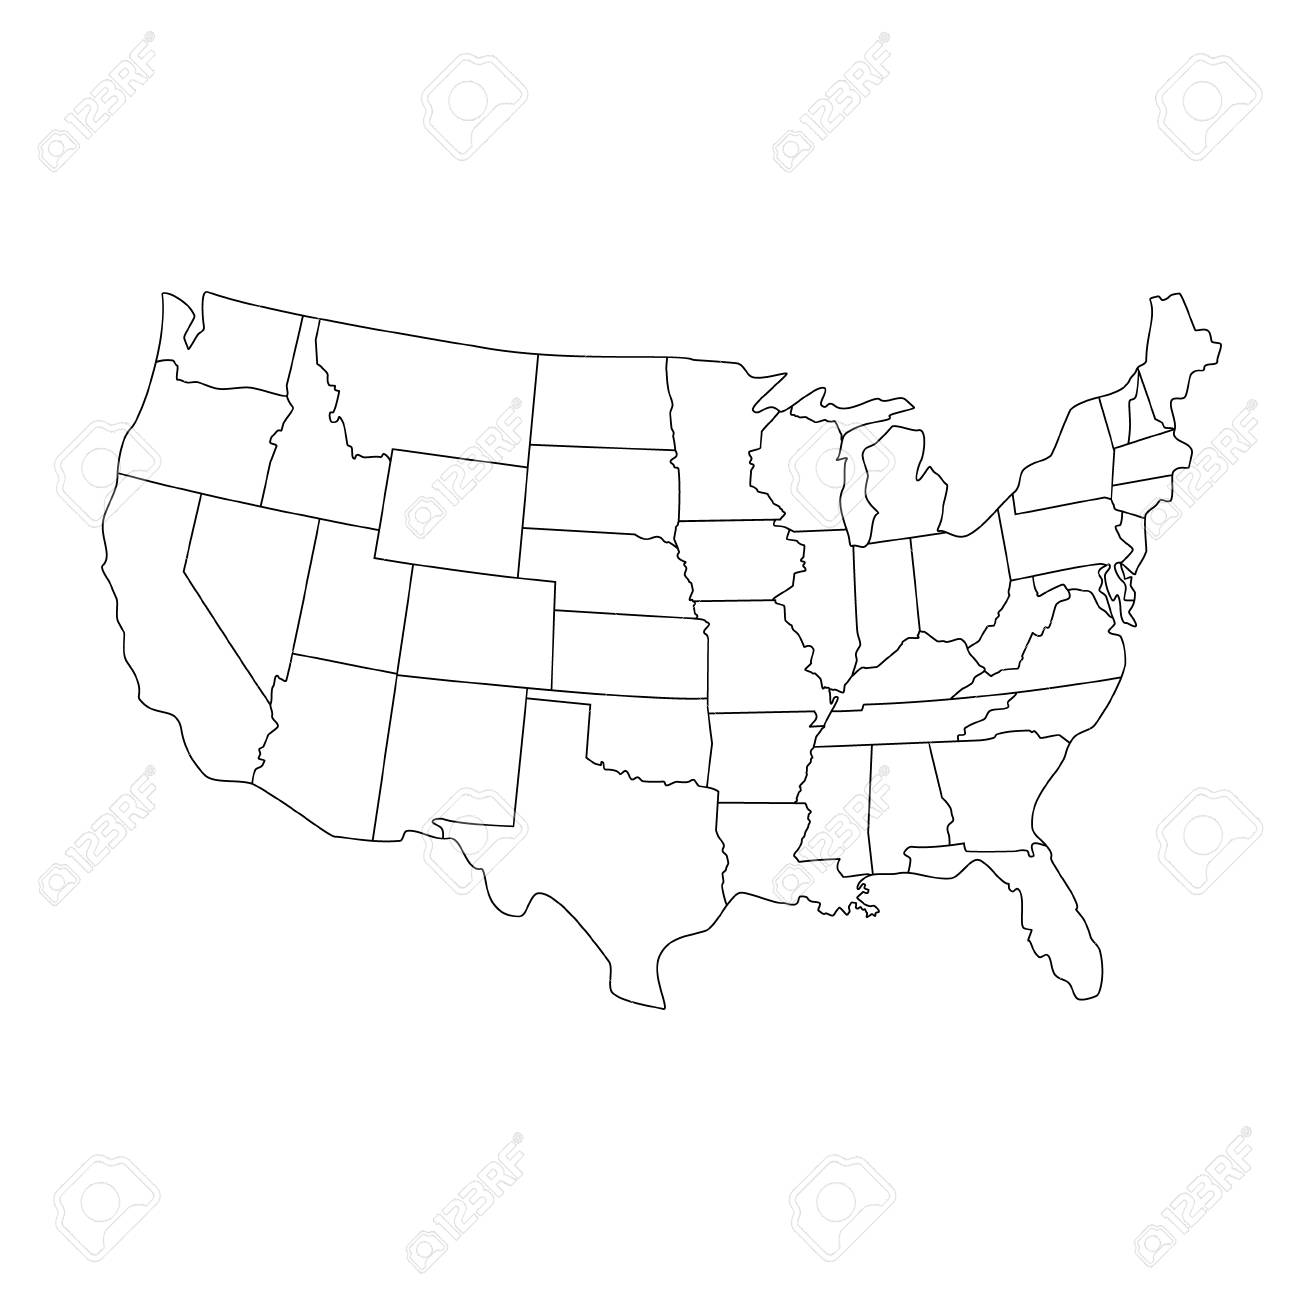 Vector illustration USA map. States and territories of United..